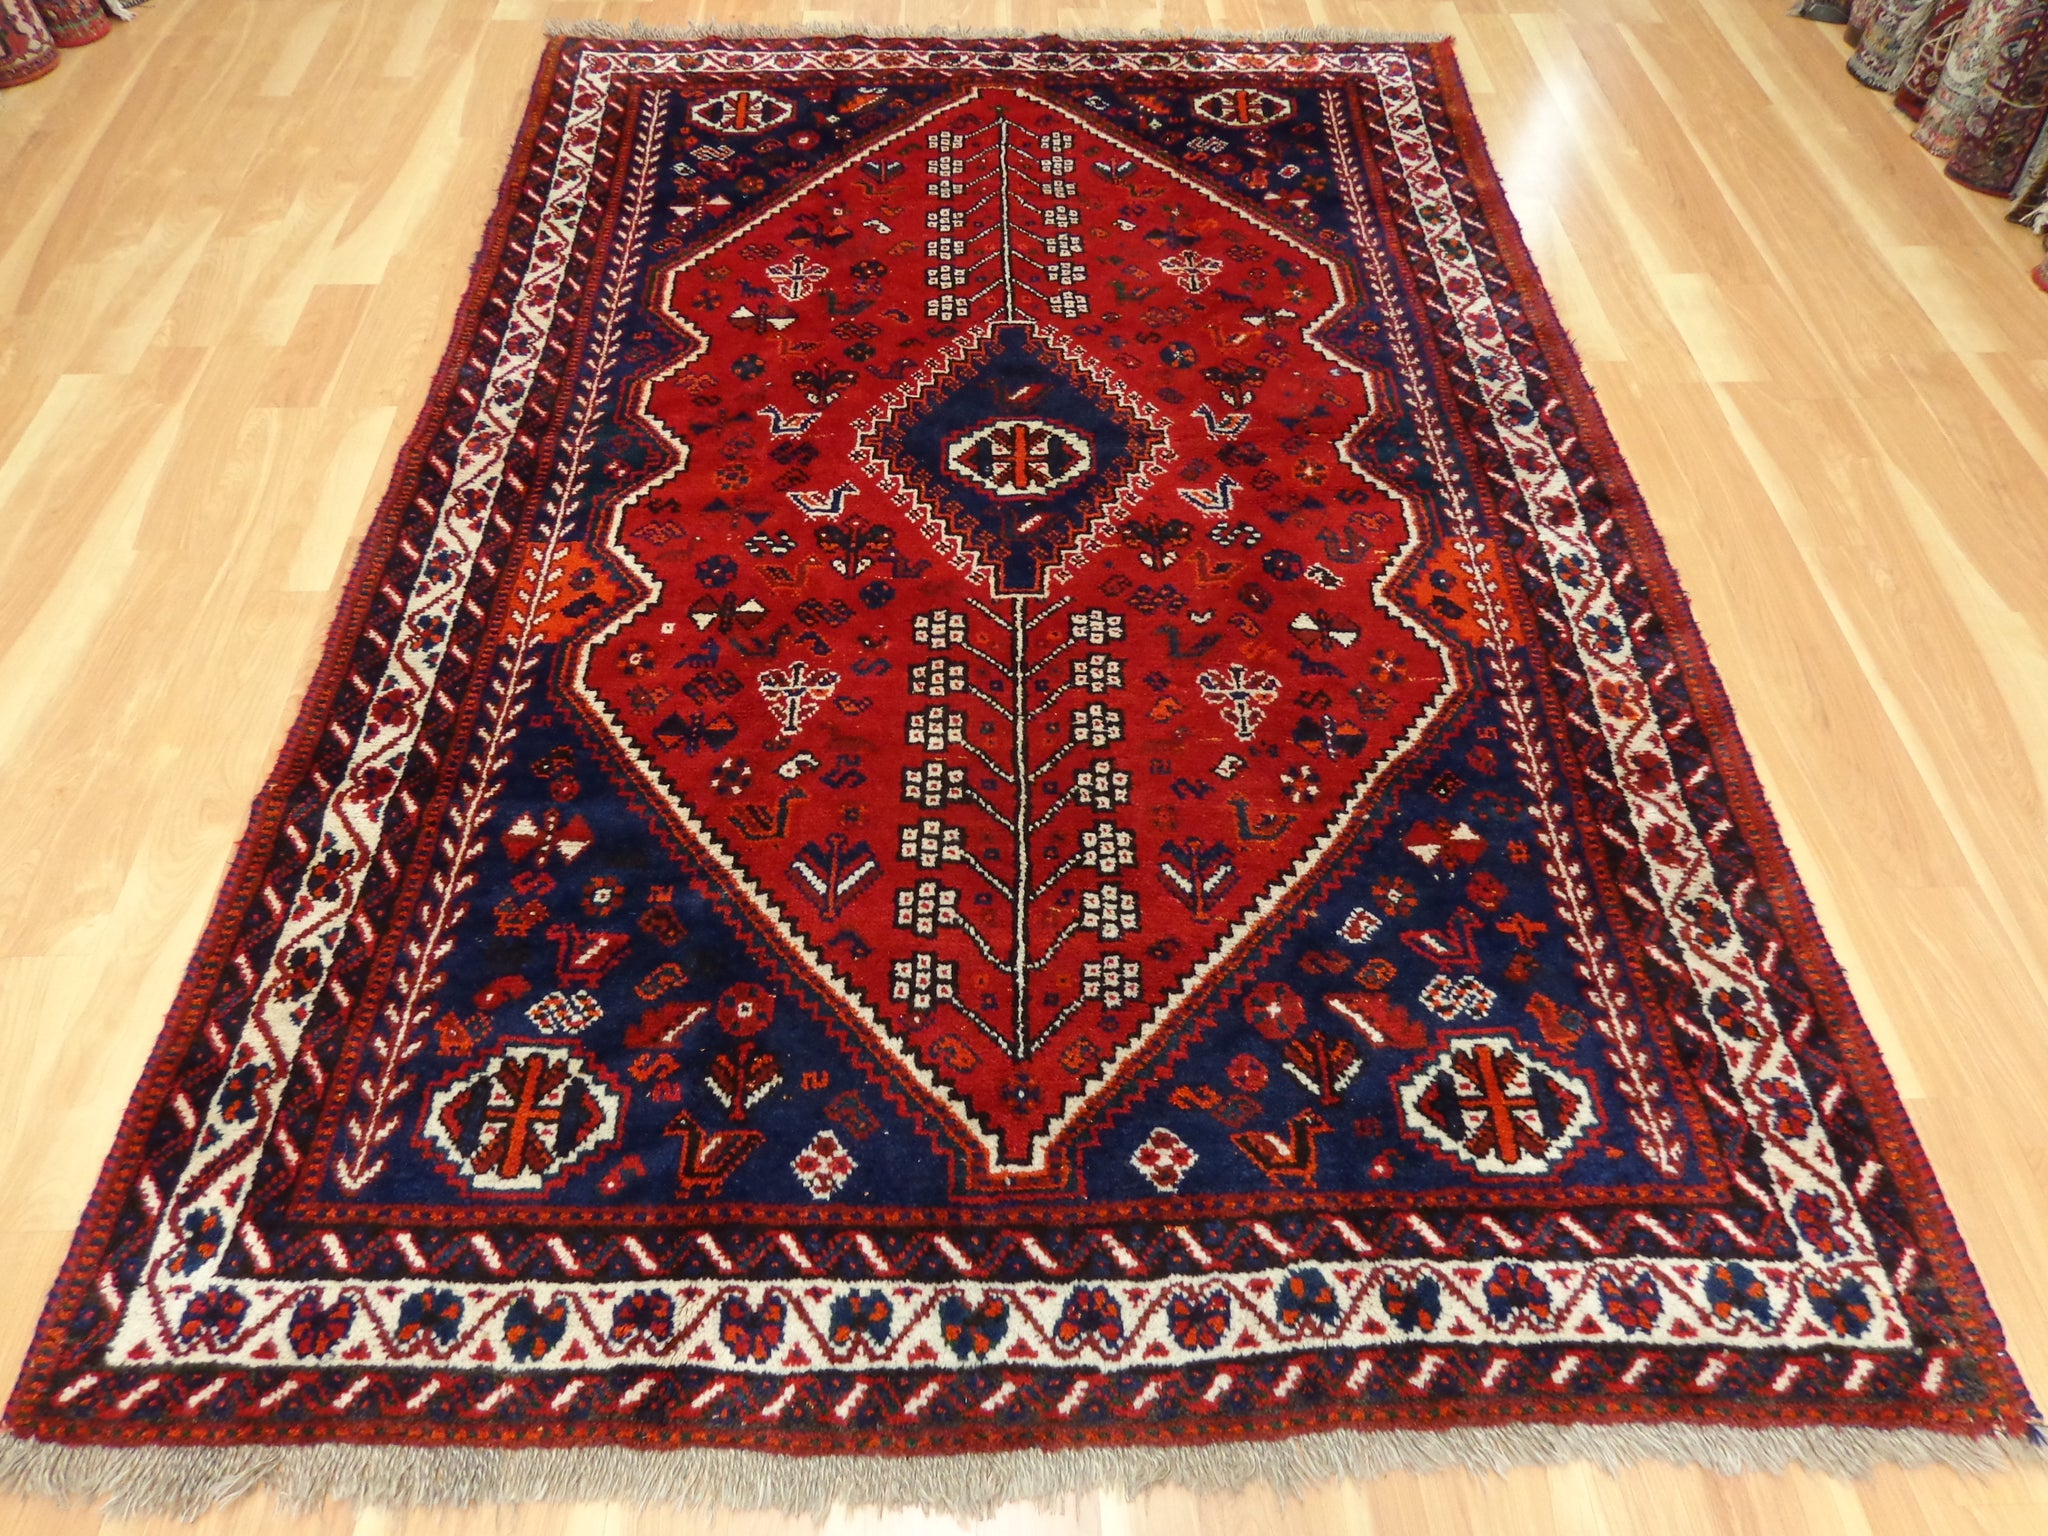 Persian Rug 5' 9 x 8' 8 Red Shiraz - Jessie's Oriental Rugs